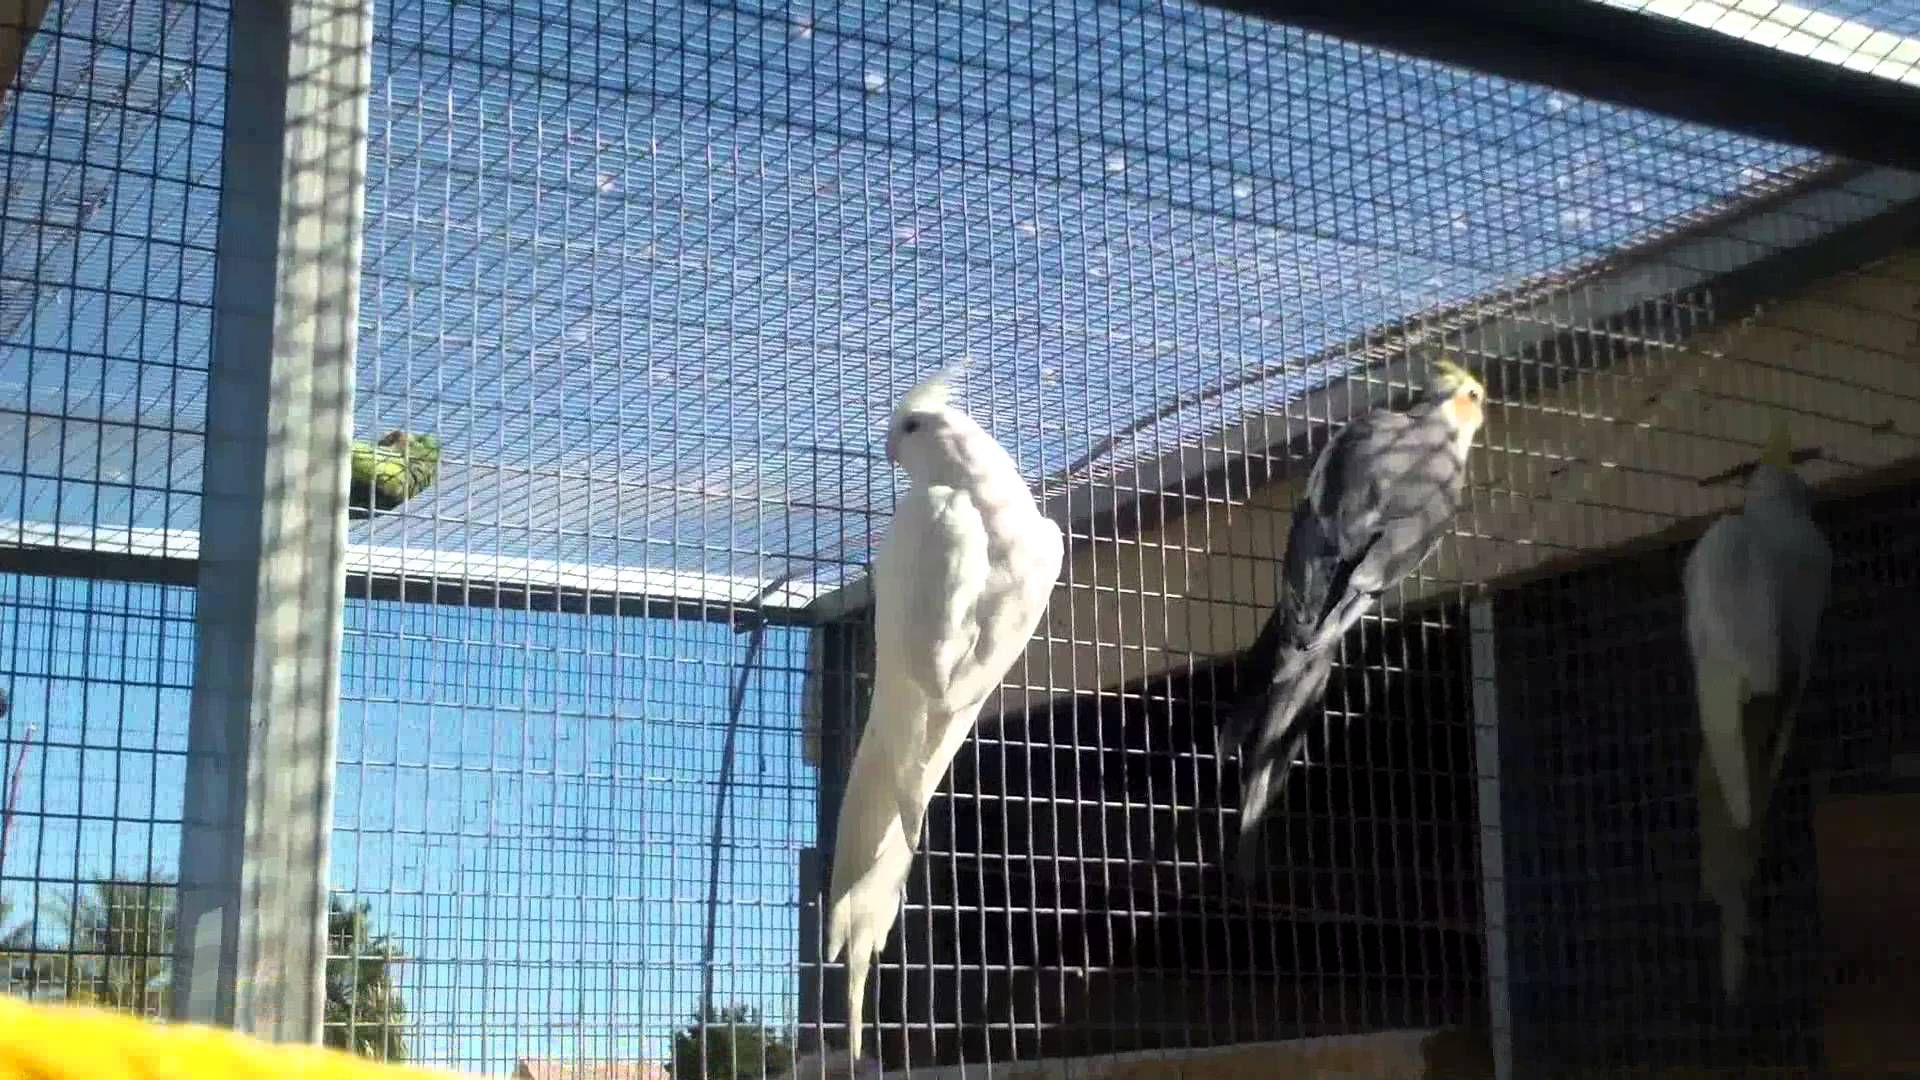 Big Outdoor Cockatiel Flight Cage Aviary Right Now There